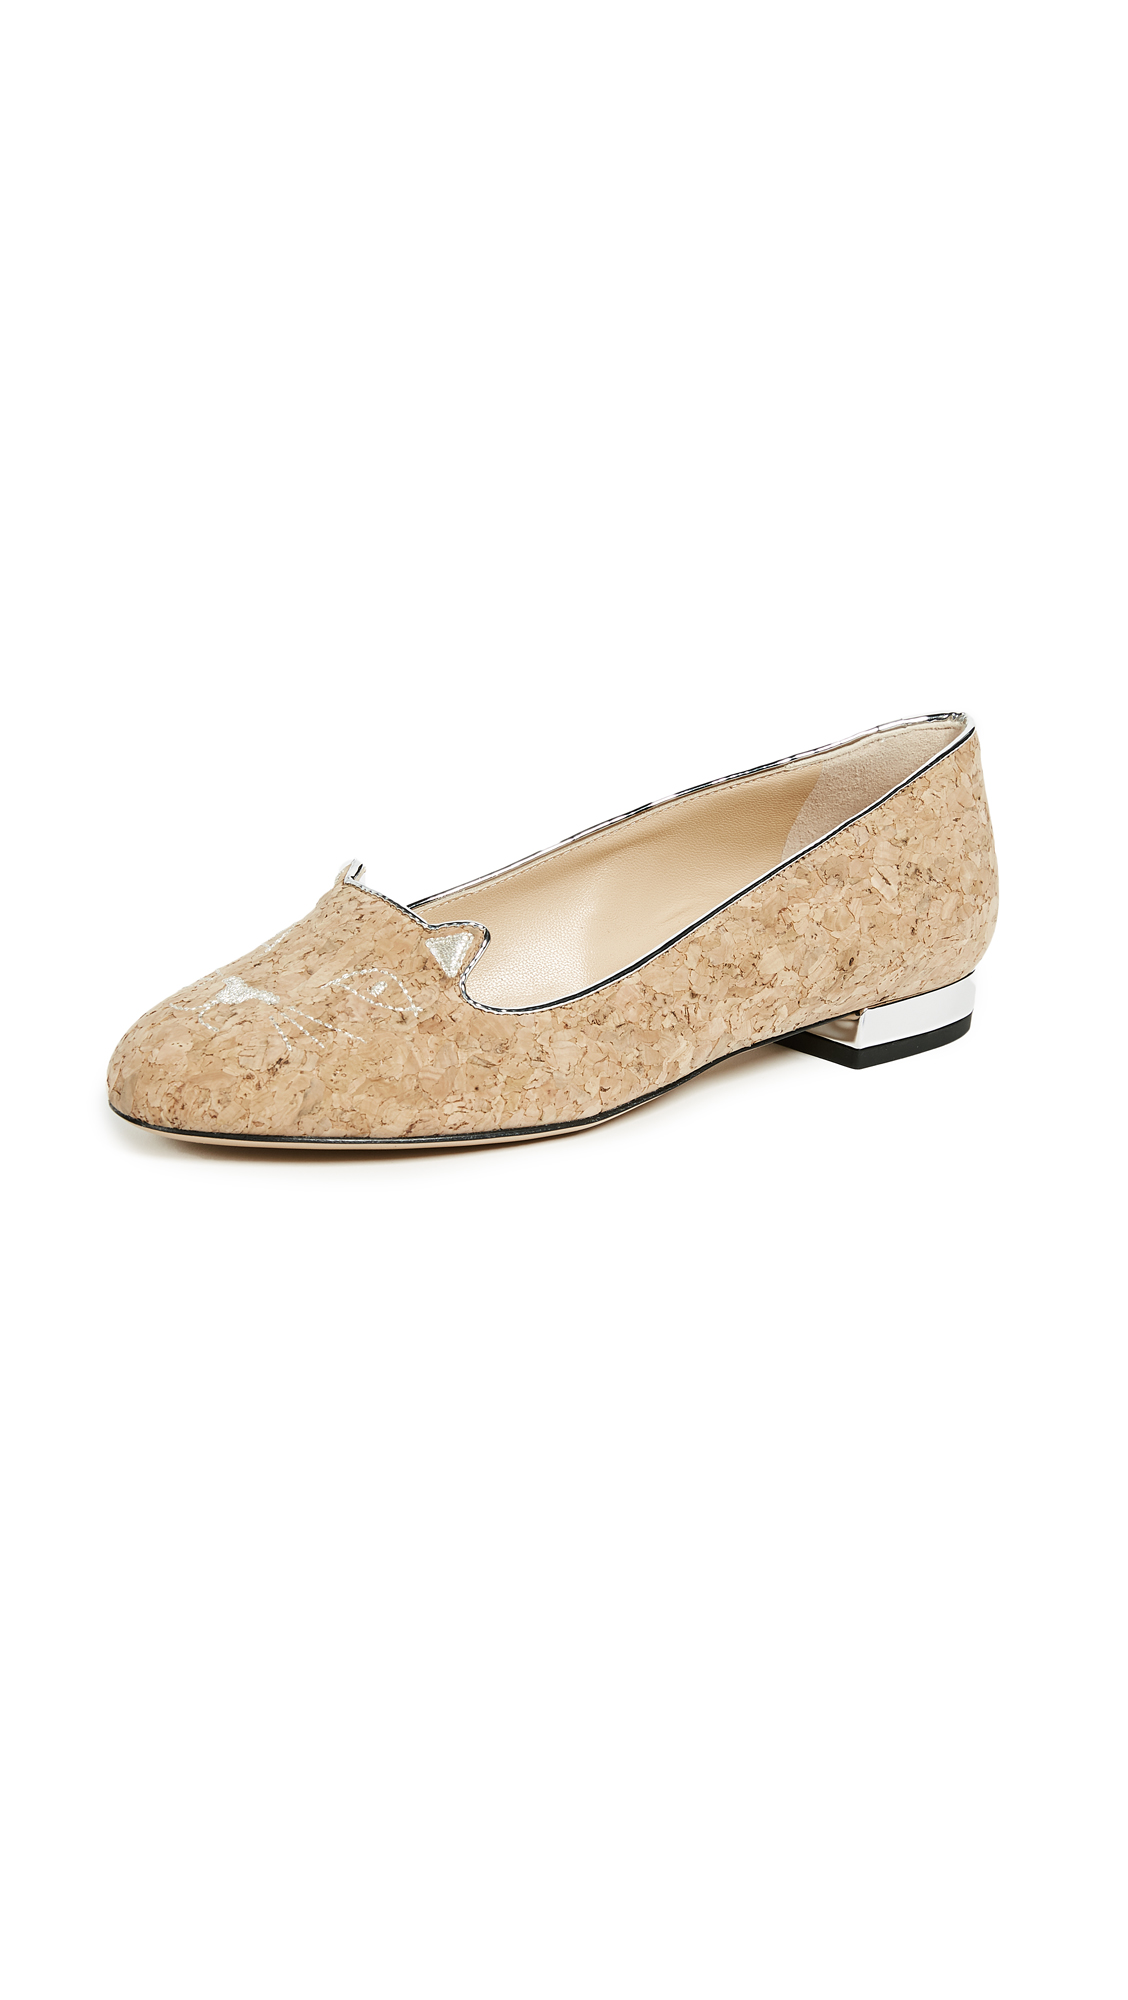 Charlotte Olympia Kitty Flats - Natural/Silver